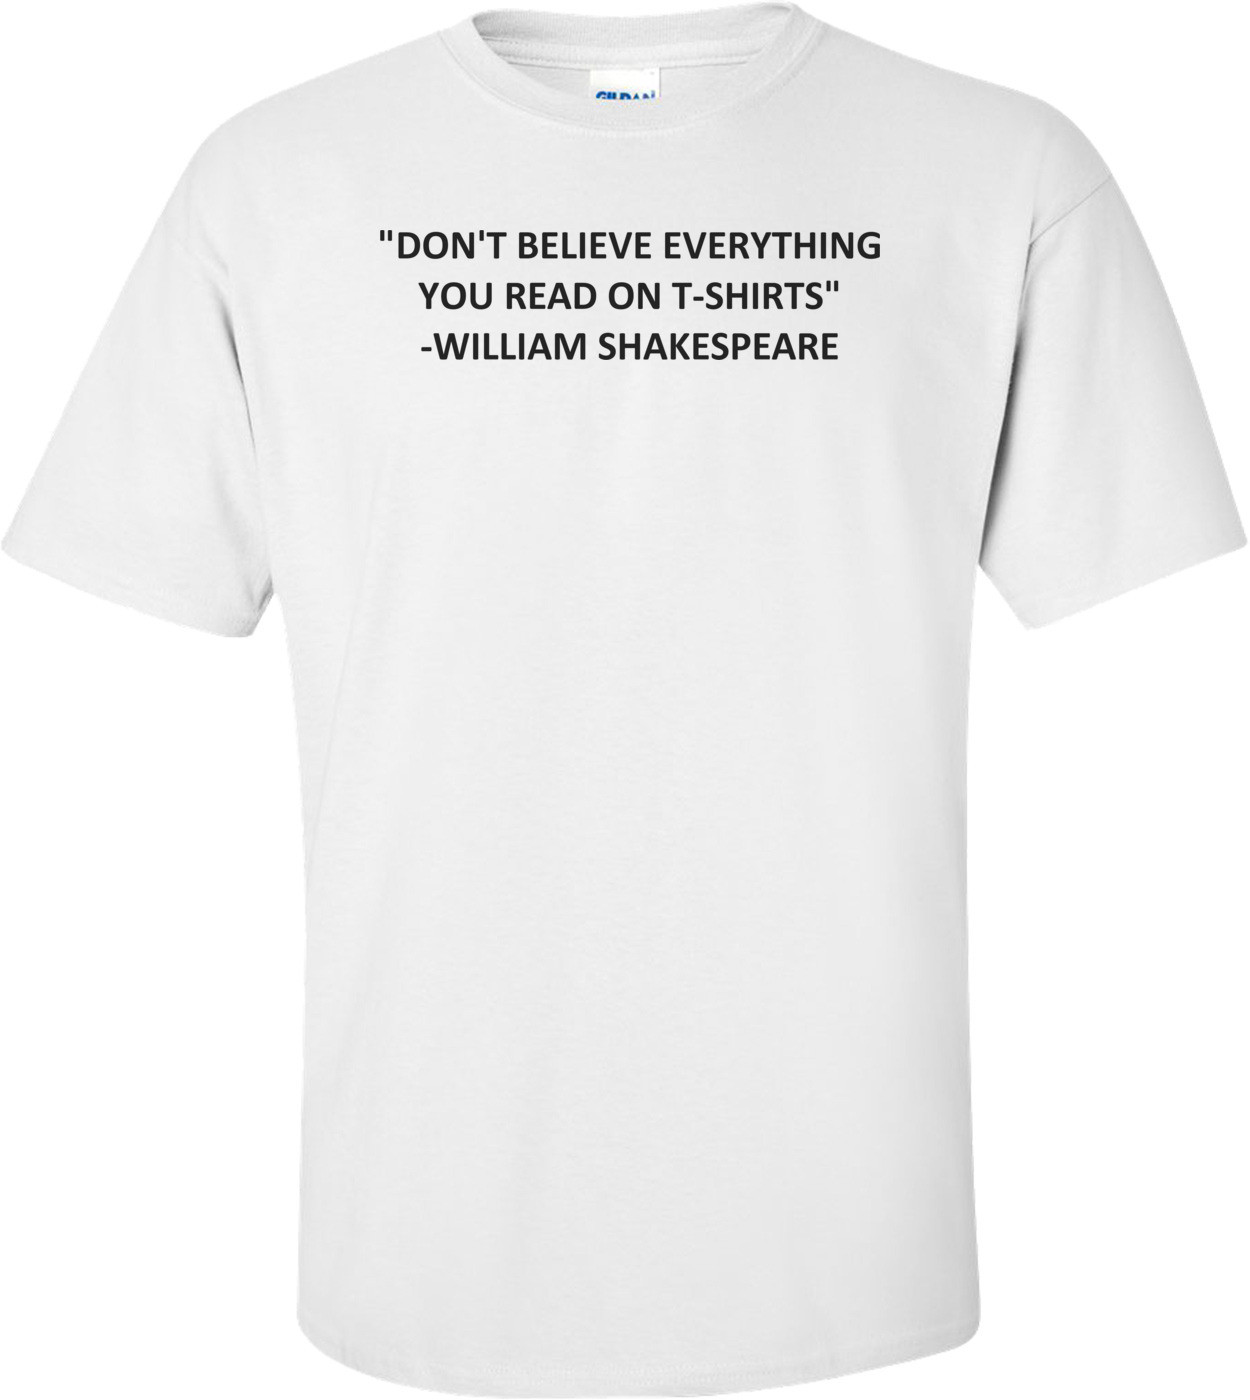 """DON'T BELIEVE EVERYTHING YOU READ ON T-SHIRTS"" - WILLIAM SHAKESPEARE. Shirt"